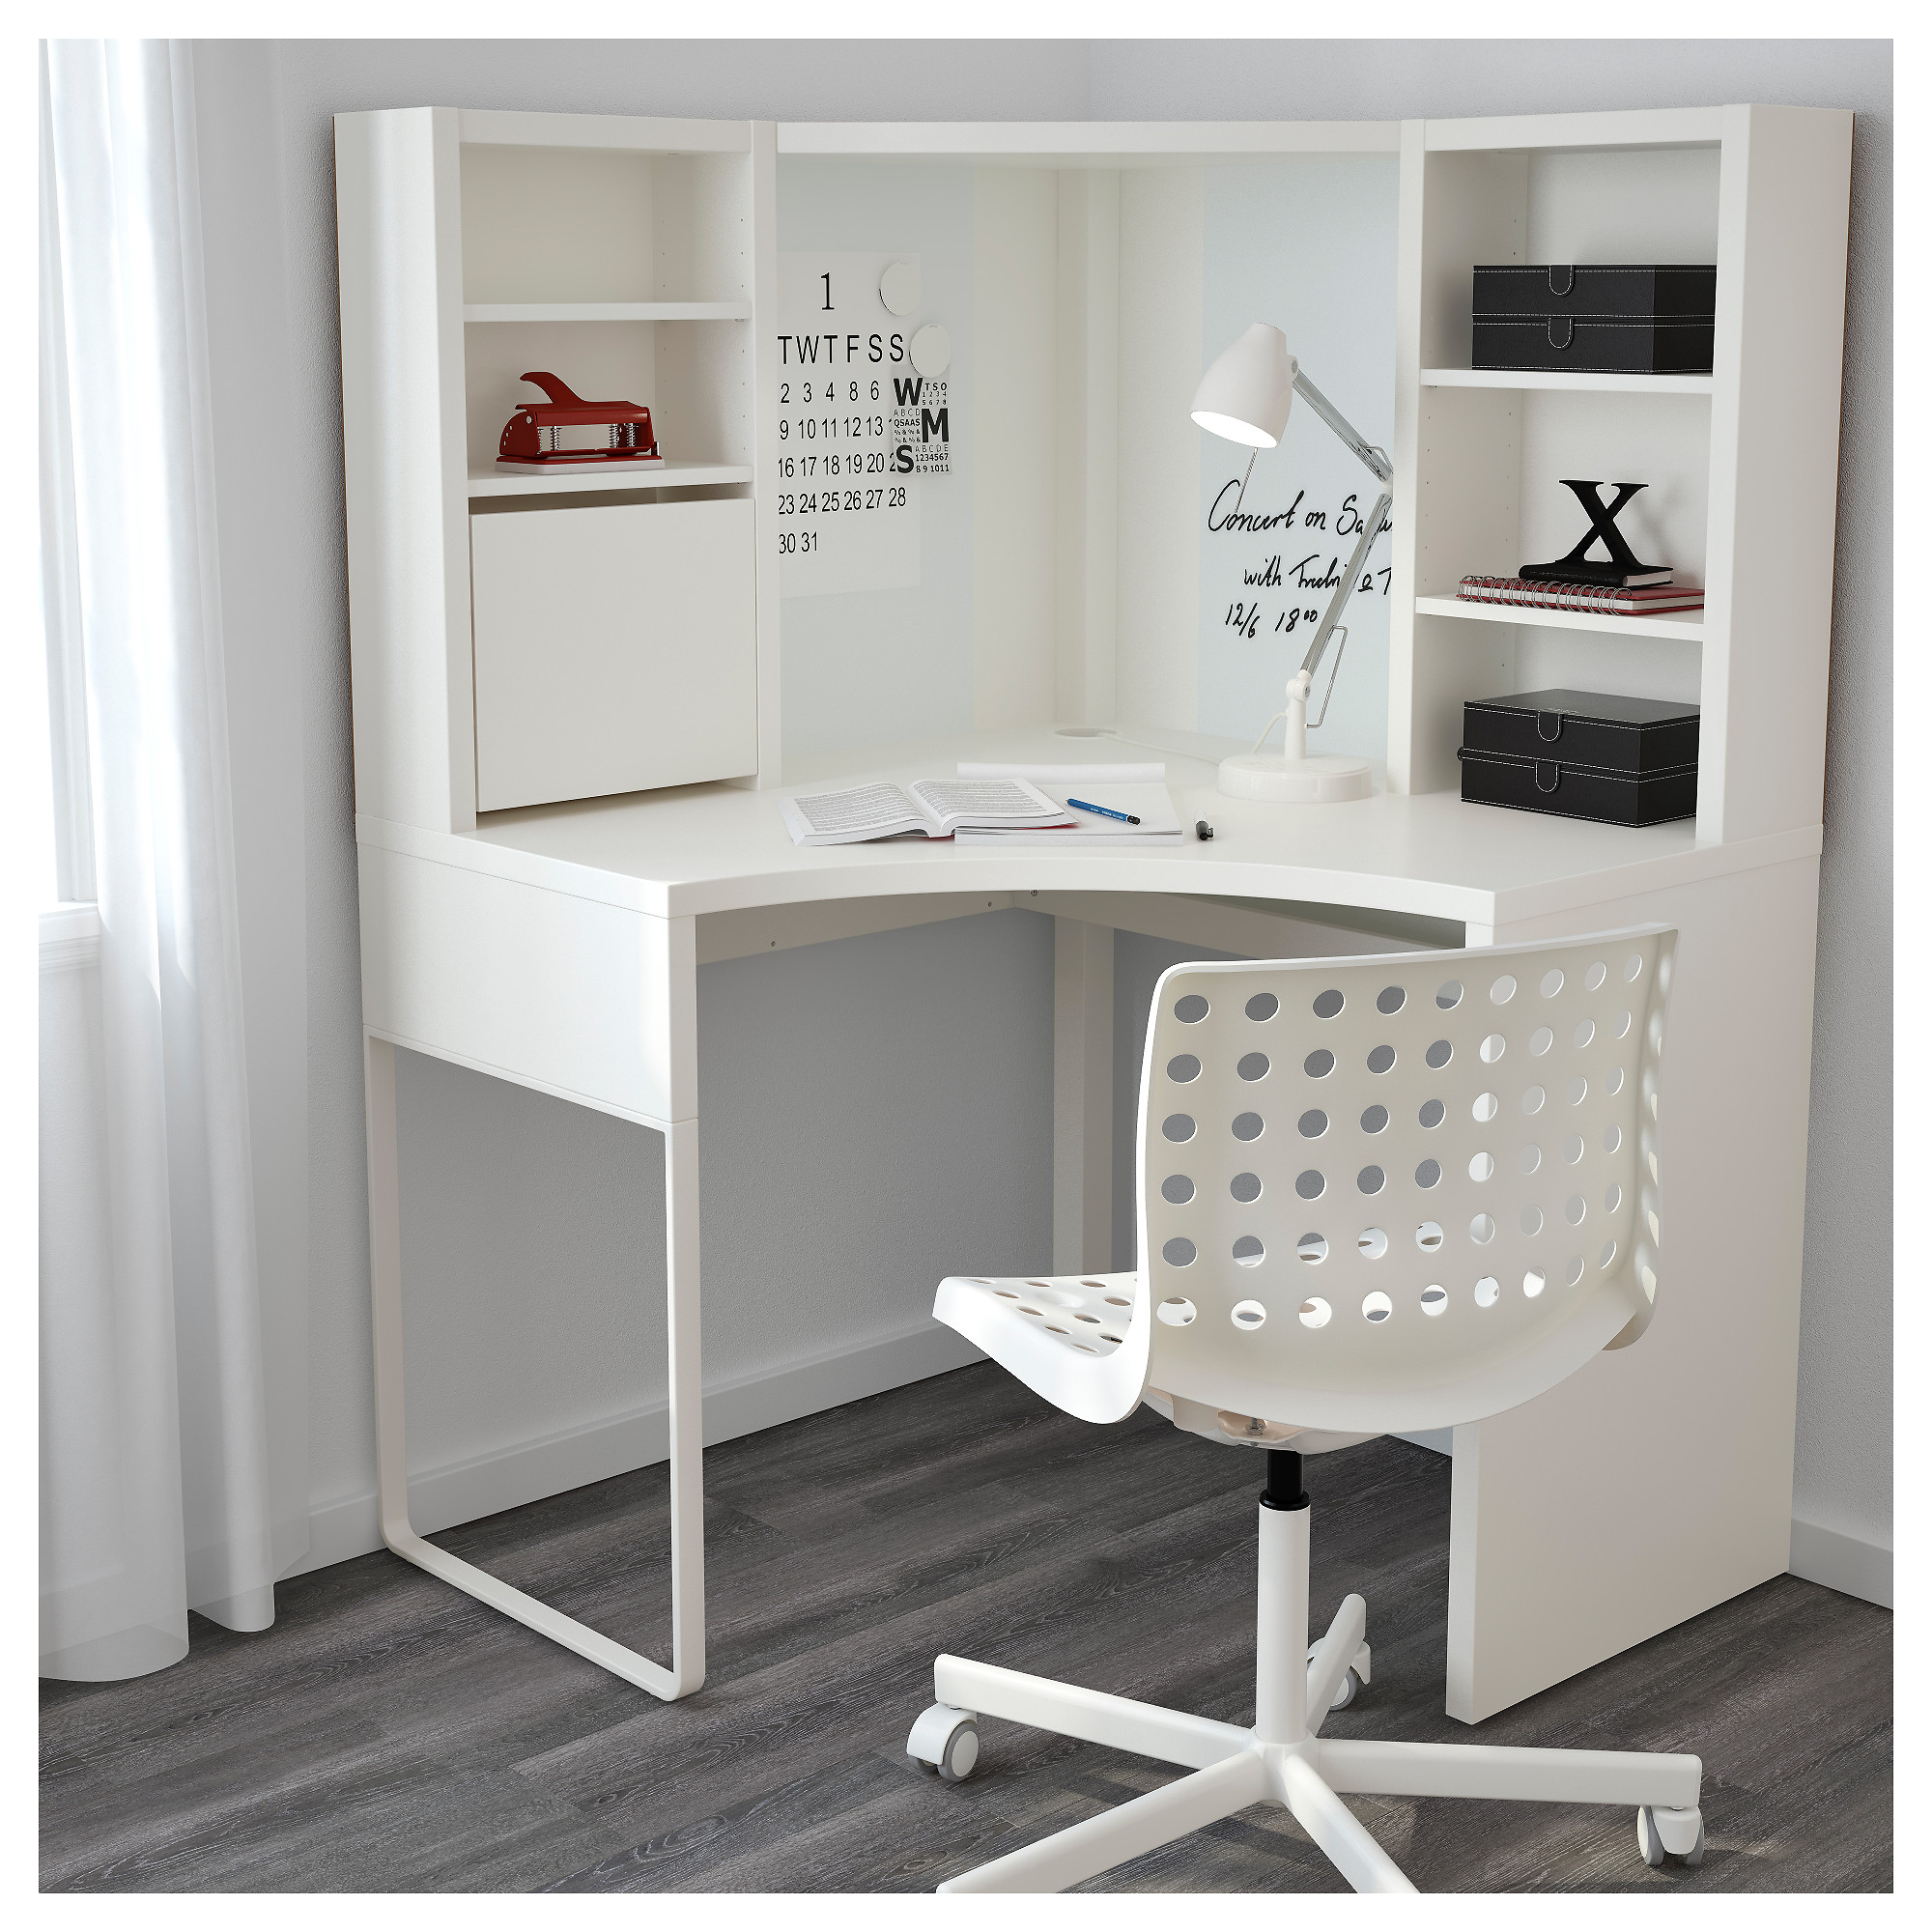 Smart use of space with corner desk